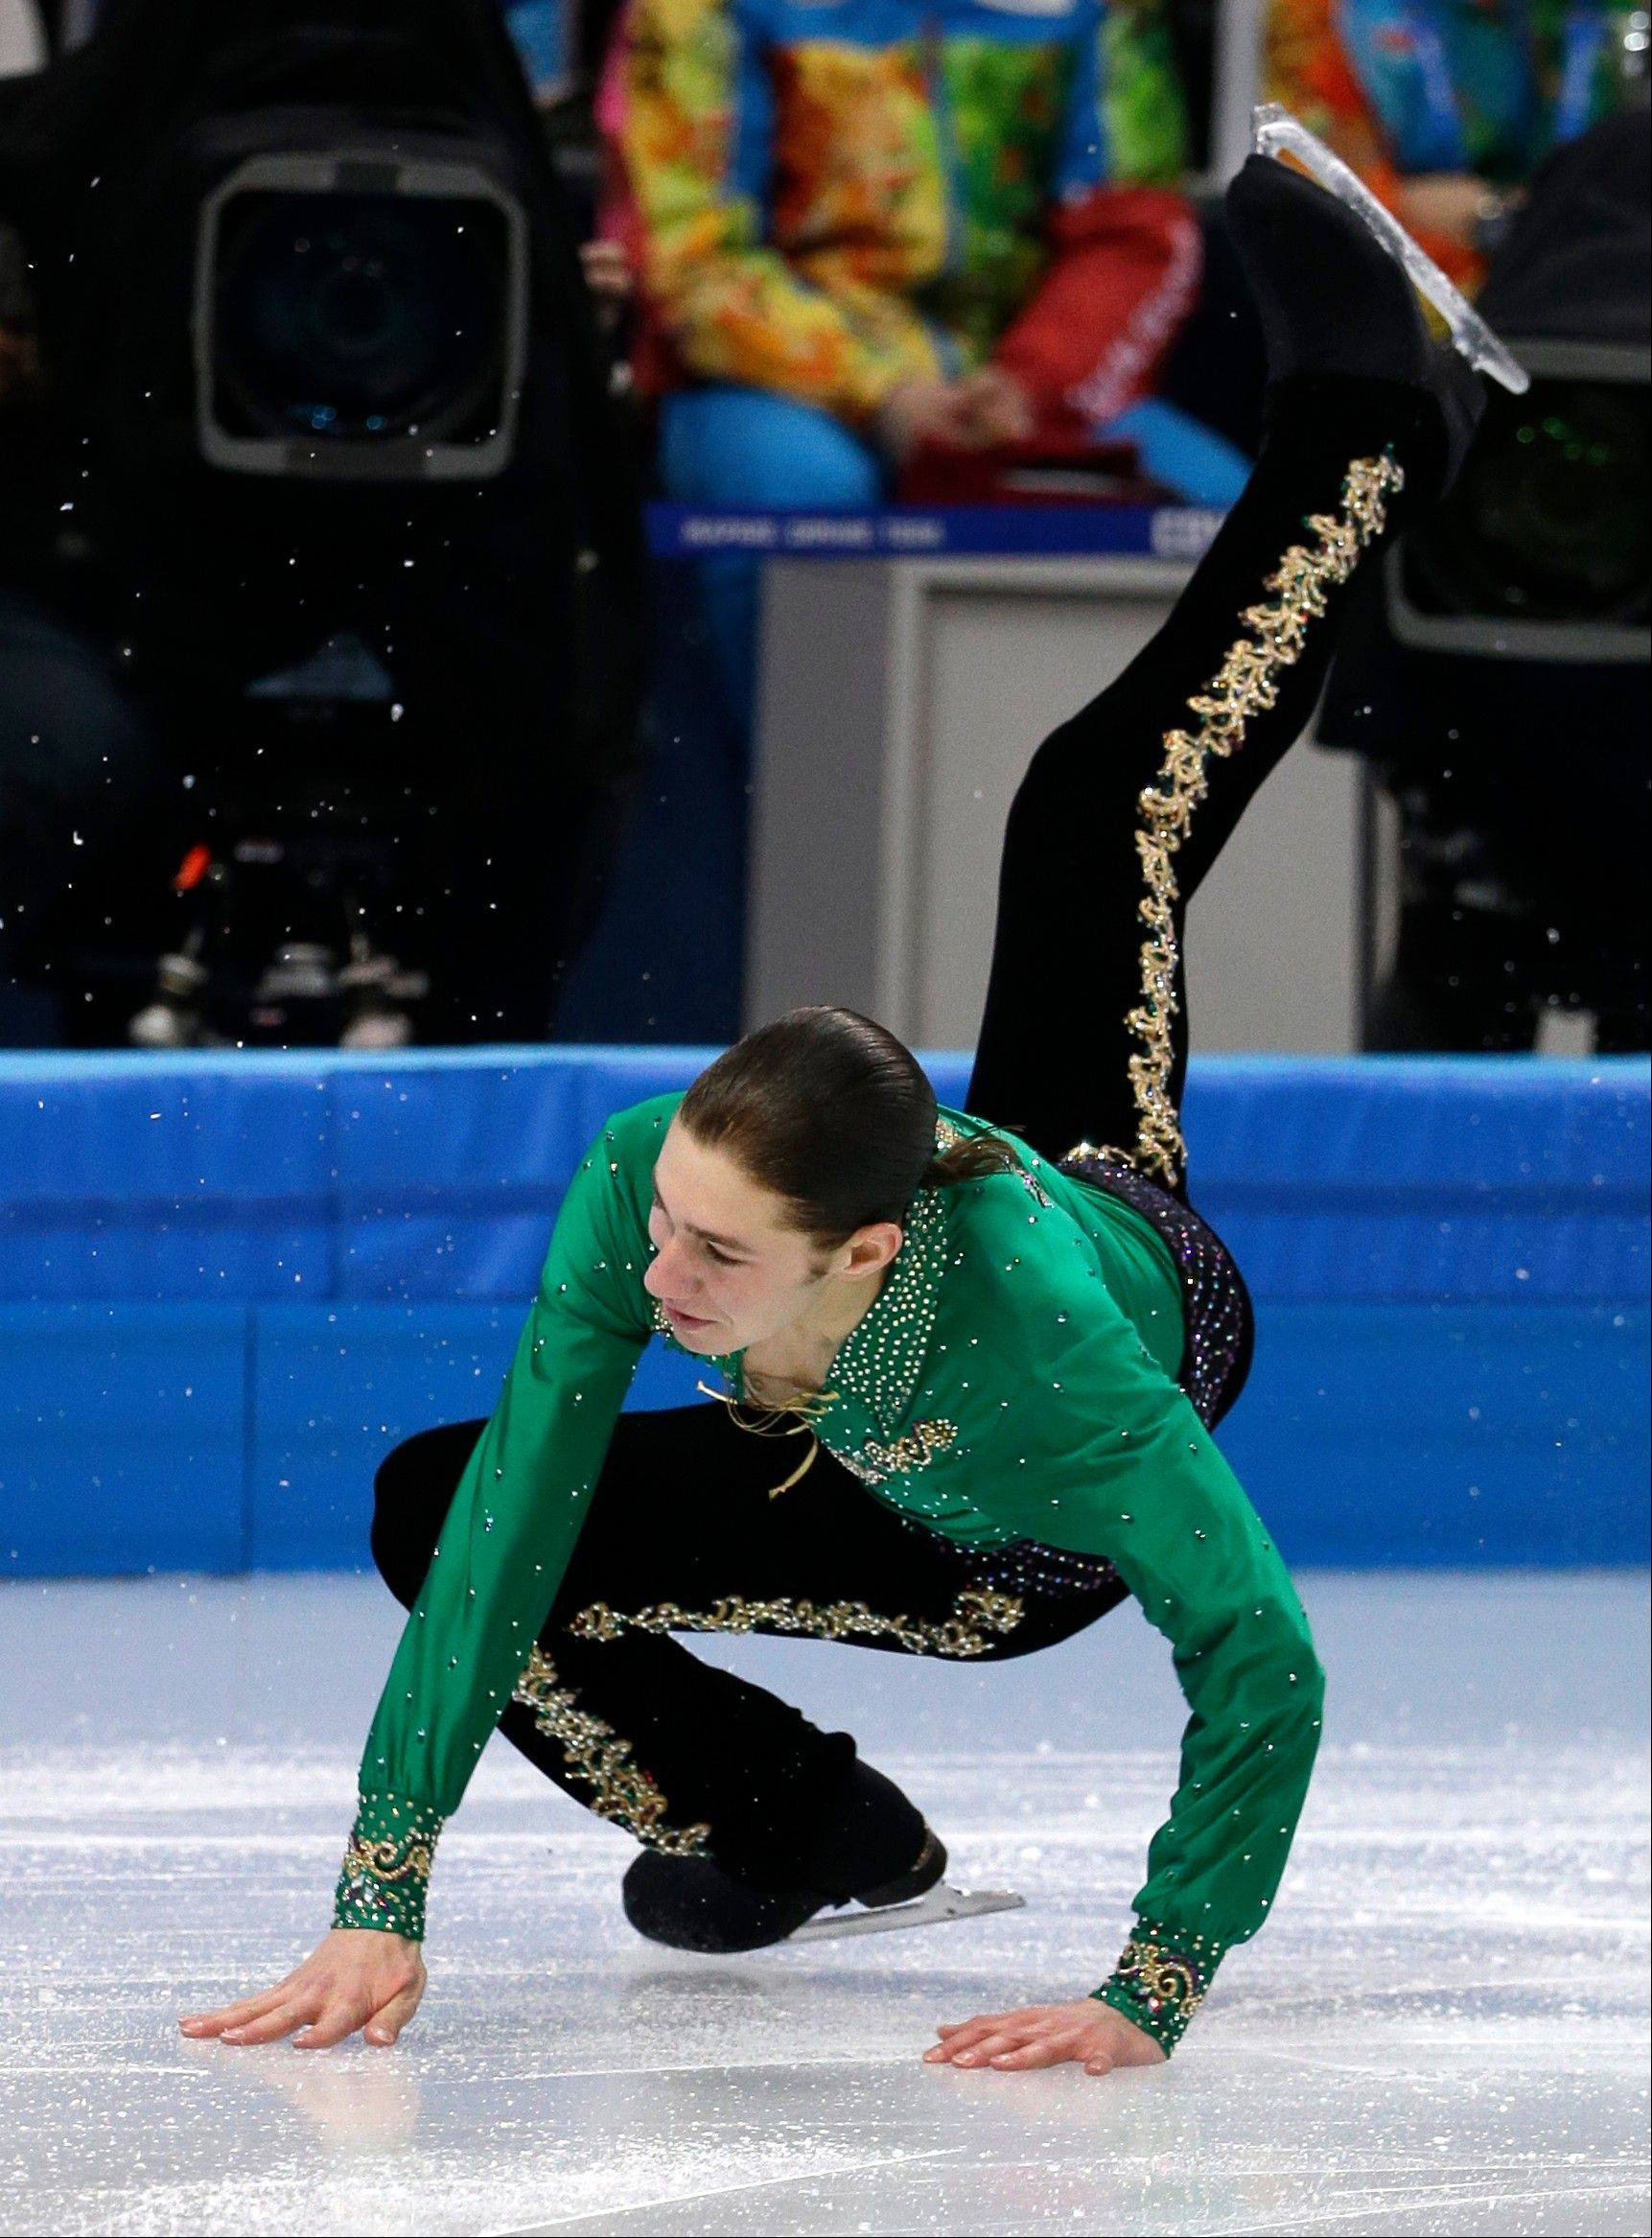 Jason Brown of the United States falls as he competes in the men's team free skate figure skating competition at the Iceberg Skating Palace during the 2014 Winter Olympics, Sunday, Feb. 9, 2014, in Sochi, Russia.